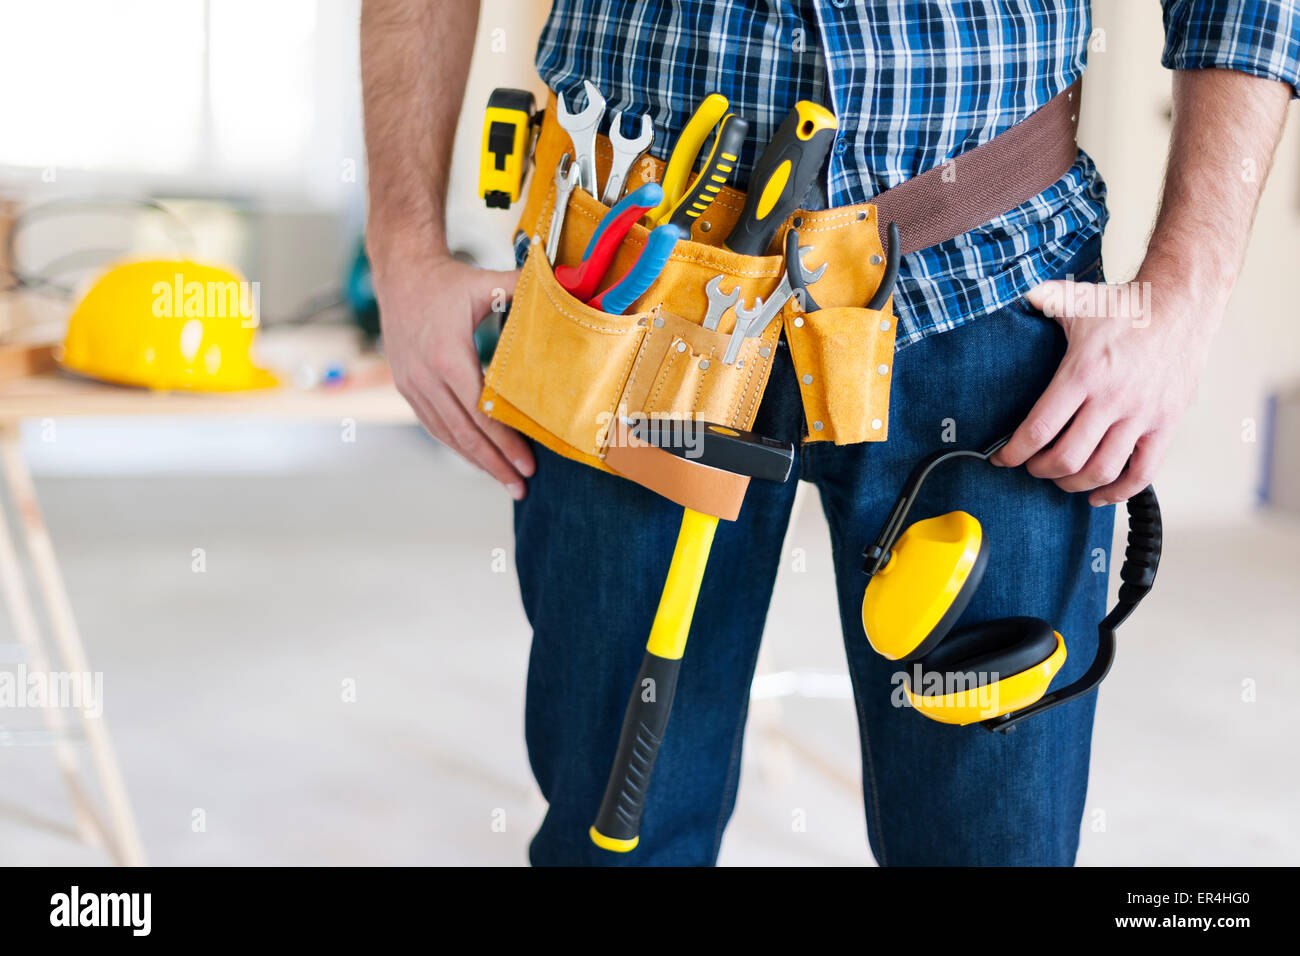 Part of construction worker with tools belt. Pilzno, Poland - Stock Image